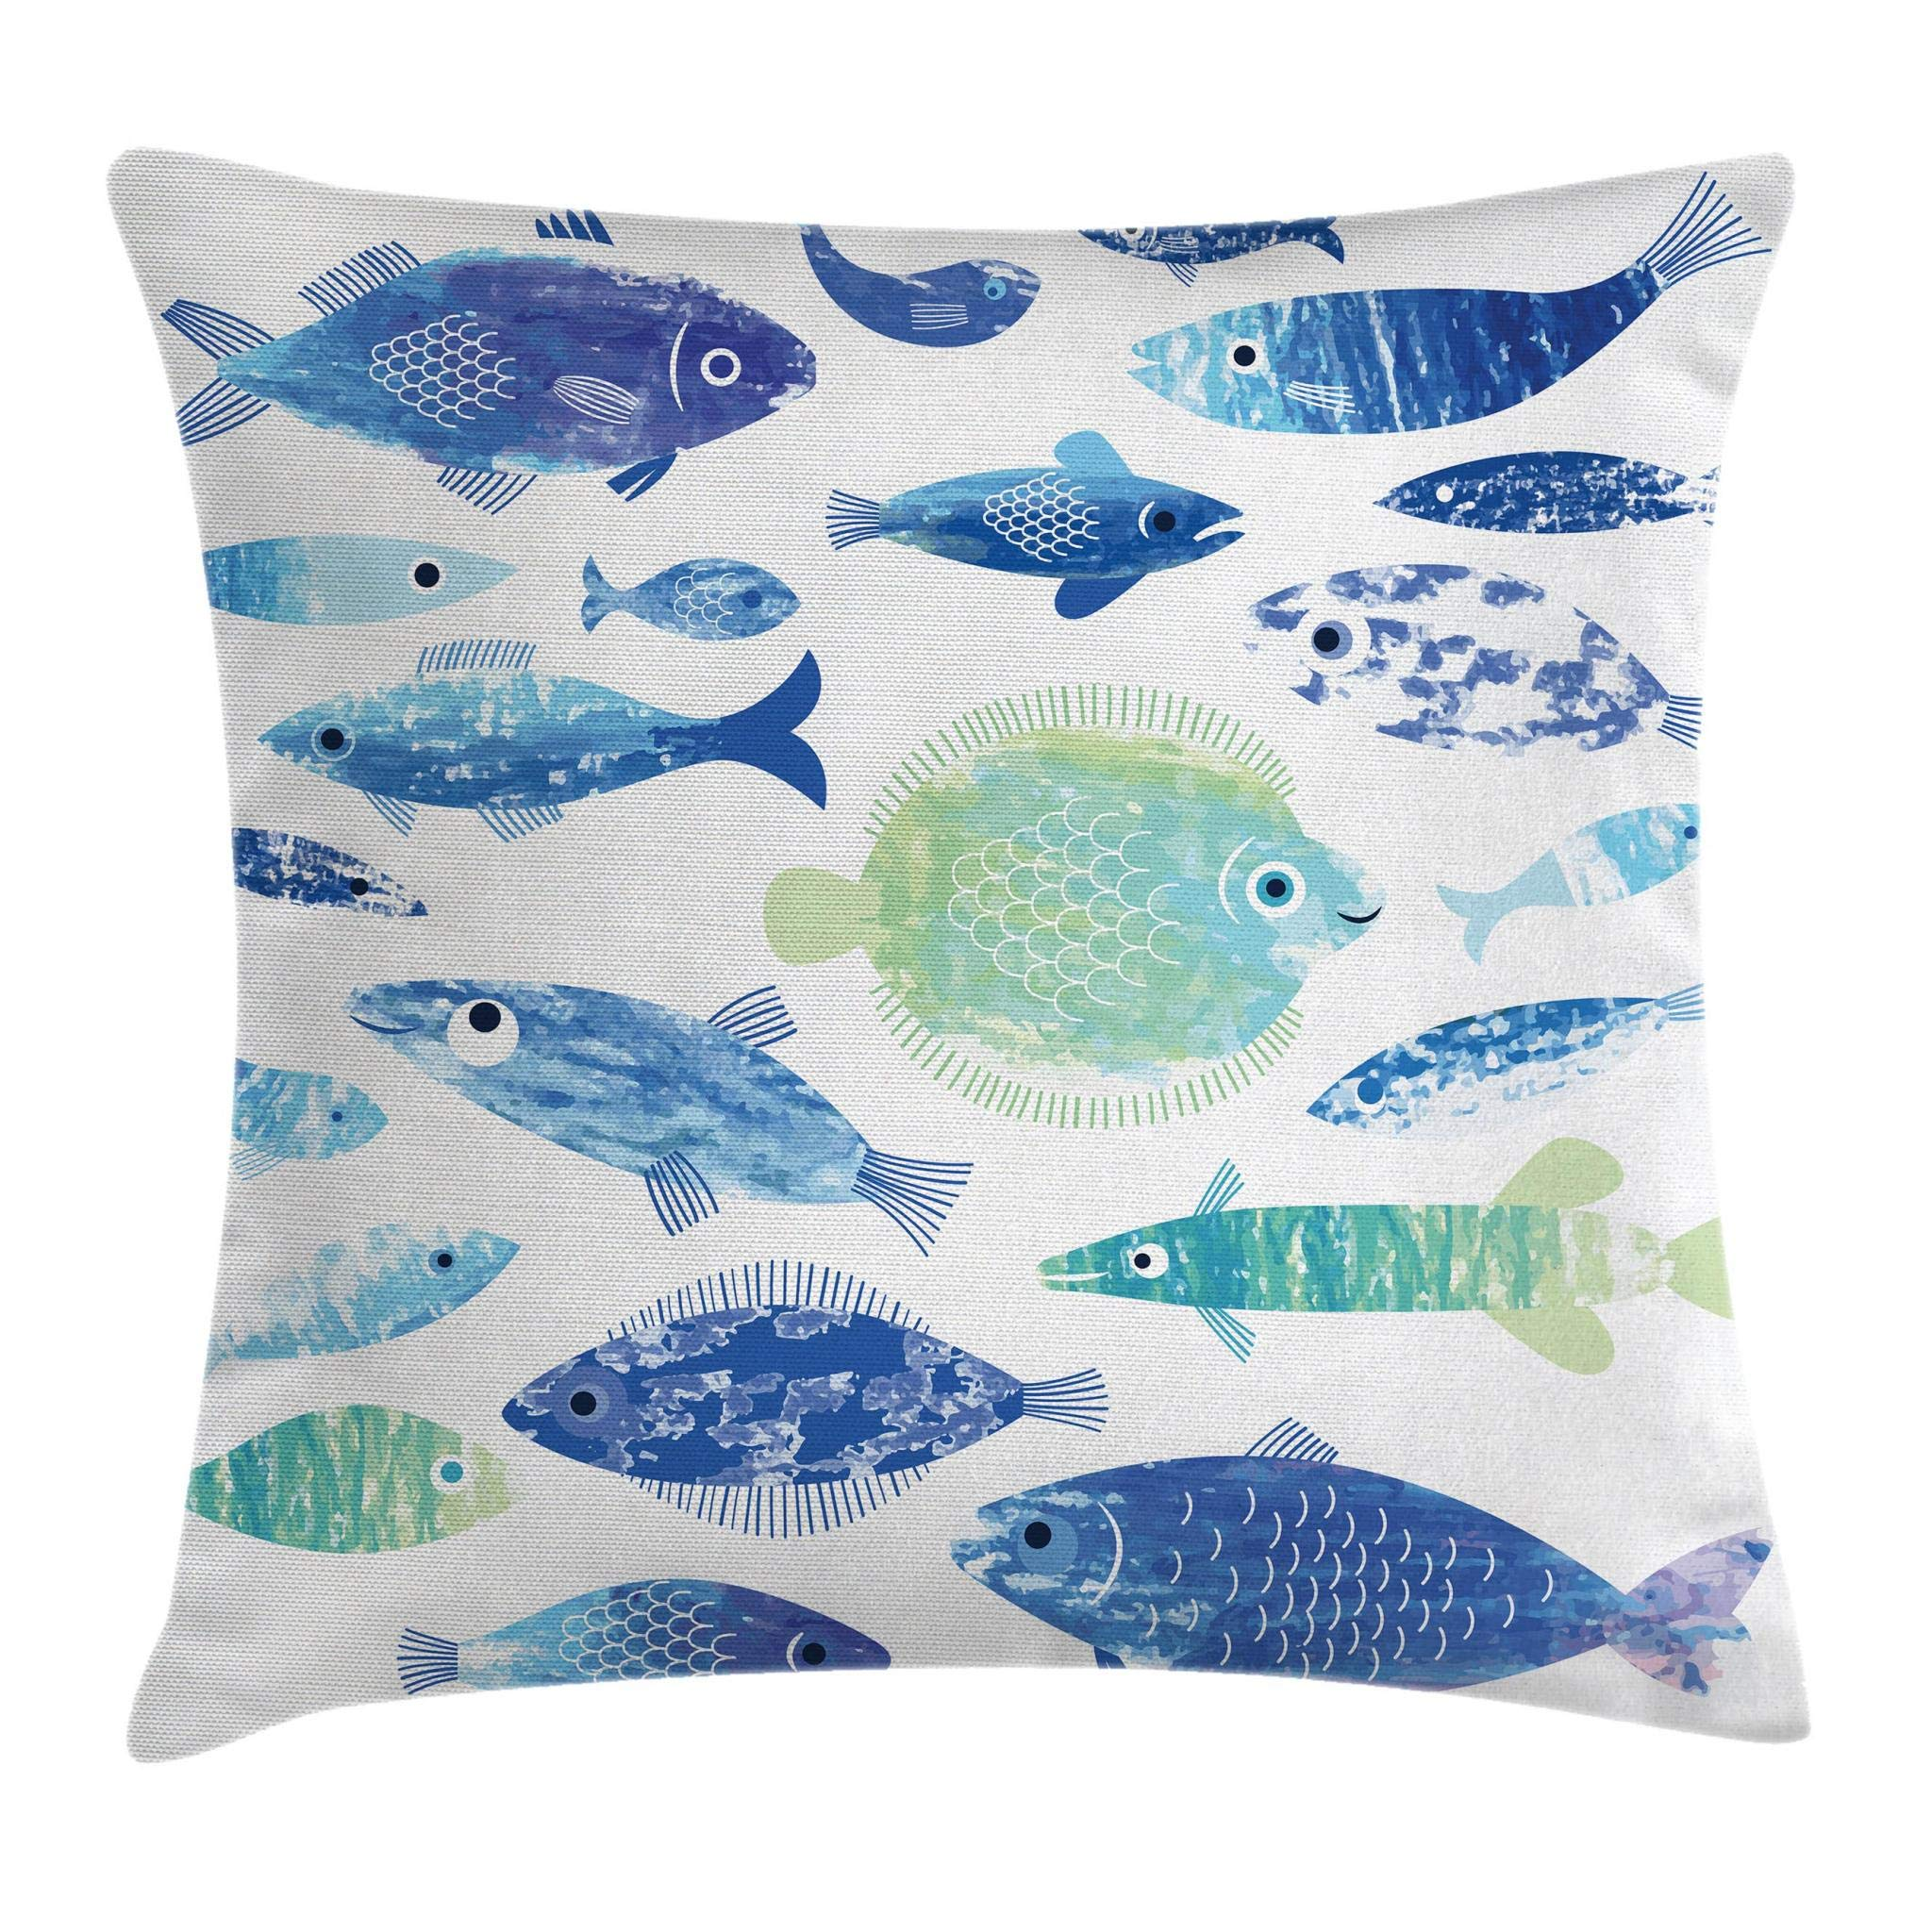 Ambesonne Ocean Animal Decor Throw Pillow Cushion Cover, Artisan Fish Patterns with Wave Lines and Sky Cloud Motifs Marine Life Image, Decorative Square Accent Pillow Case, 18 X 18 Inches, Blue